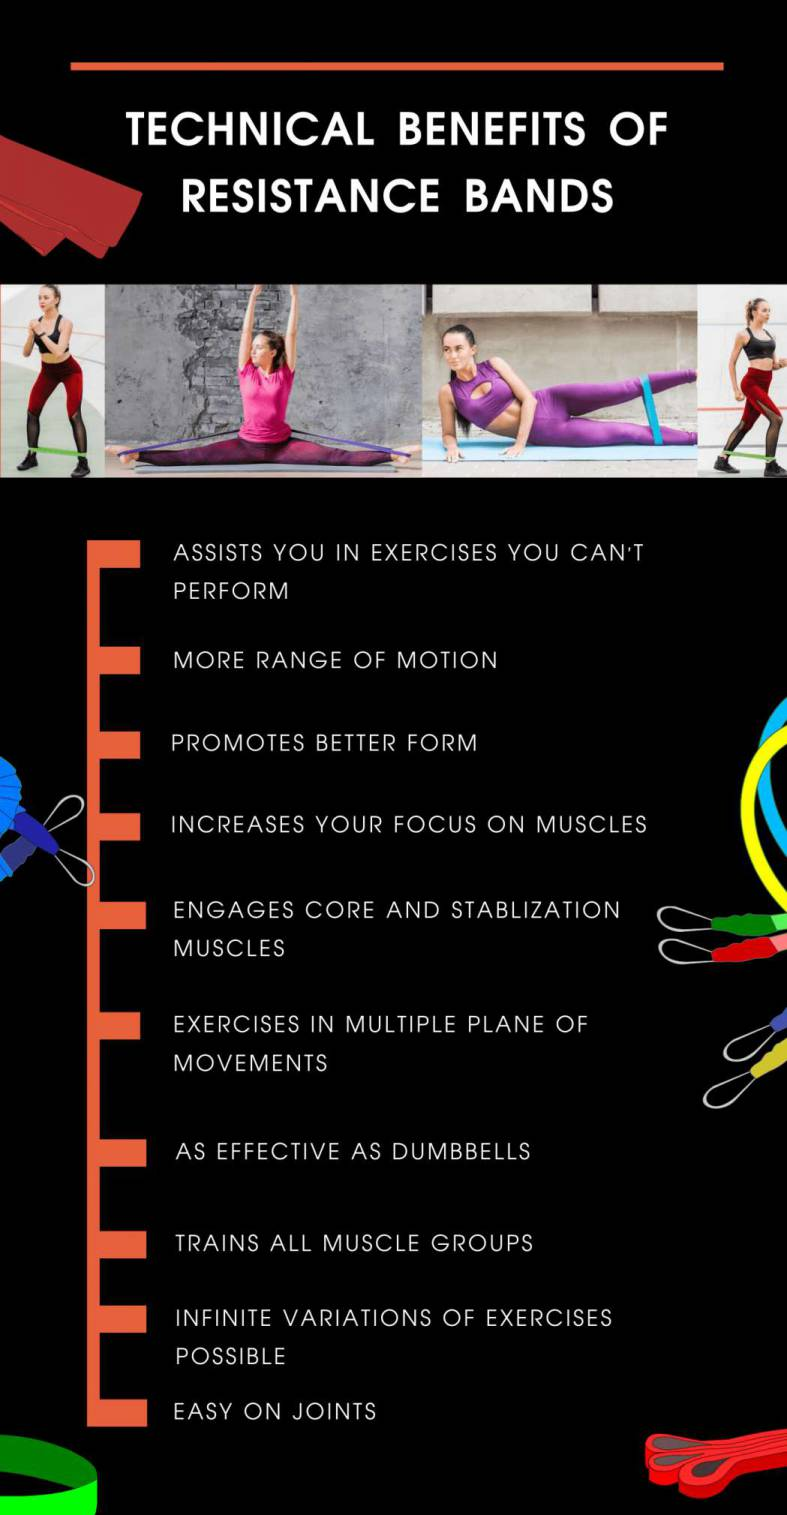 Infographic displaying benefits of resistance bands based on technical aspects